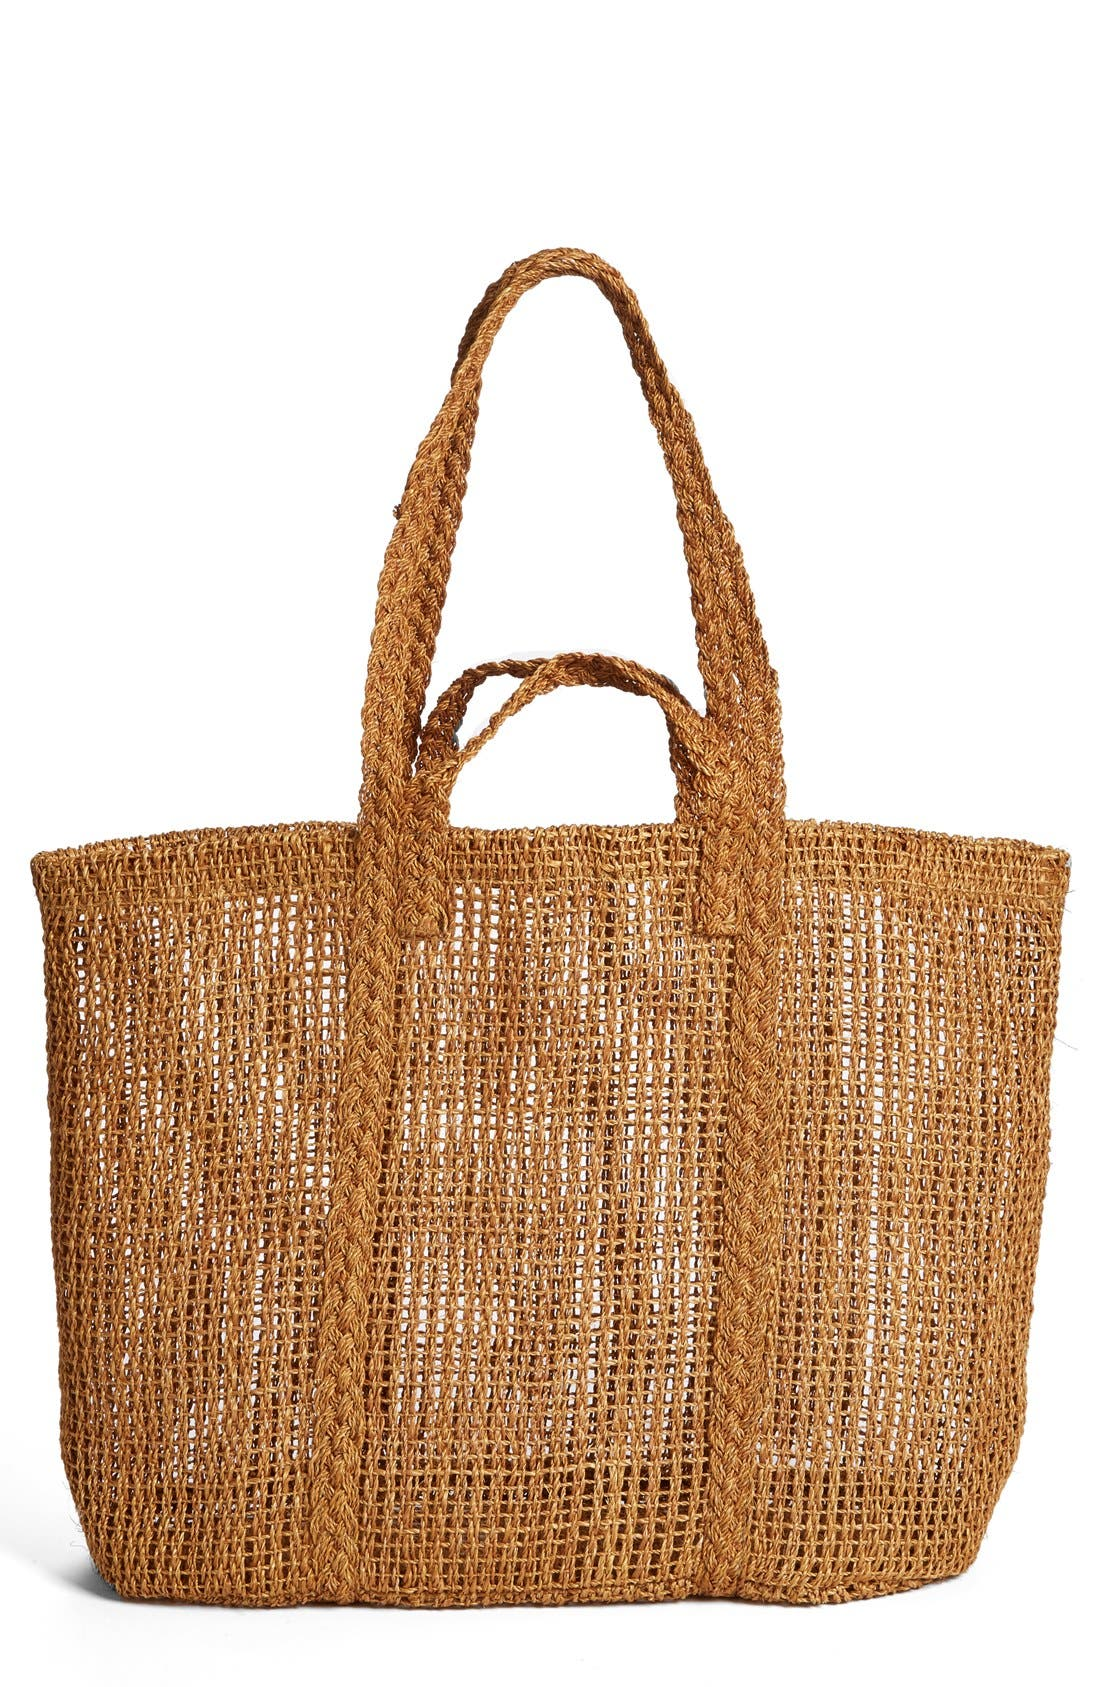 Madewell Straw Beach Tote | Nordstrom